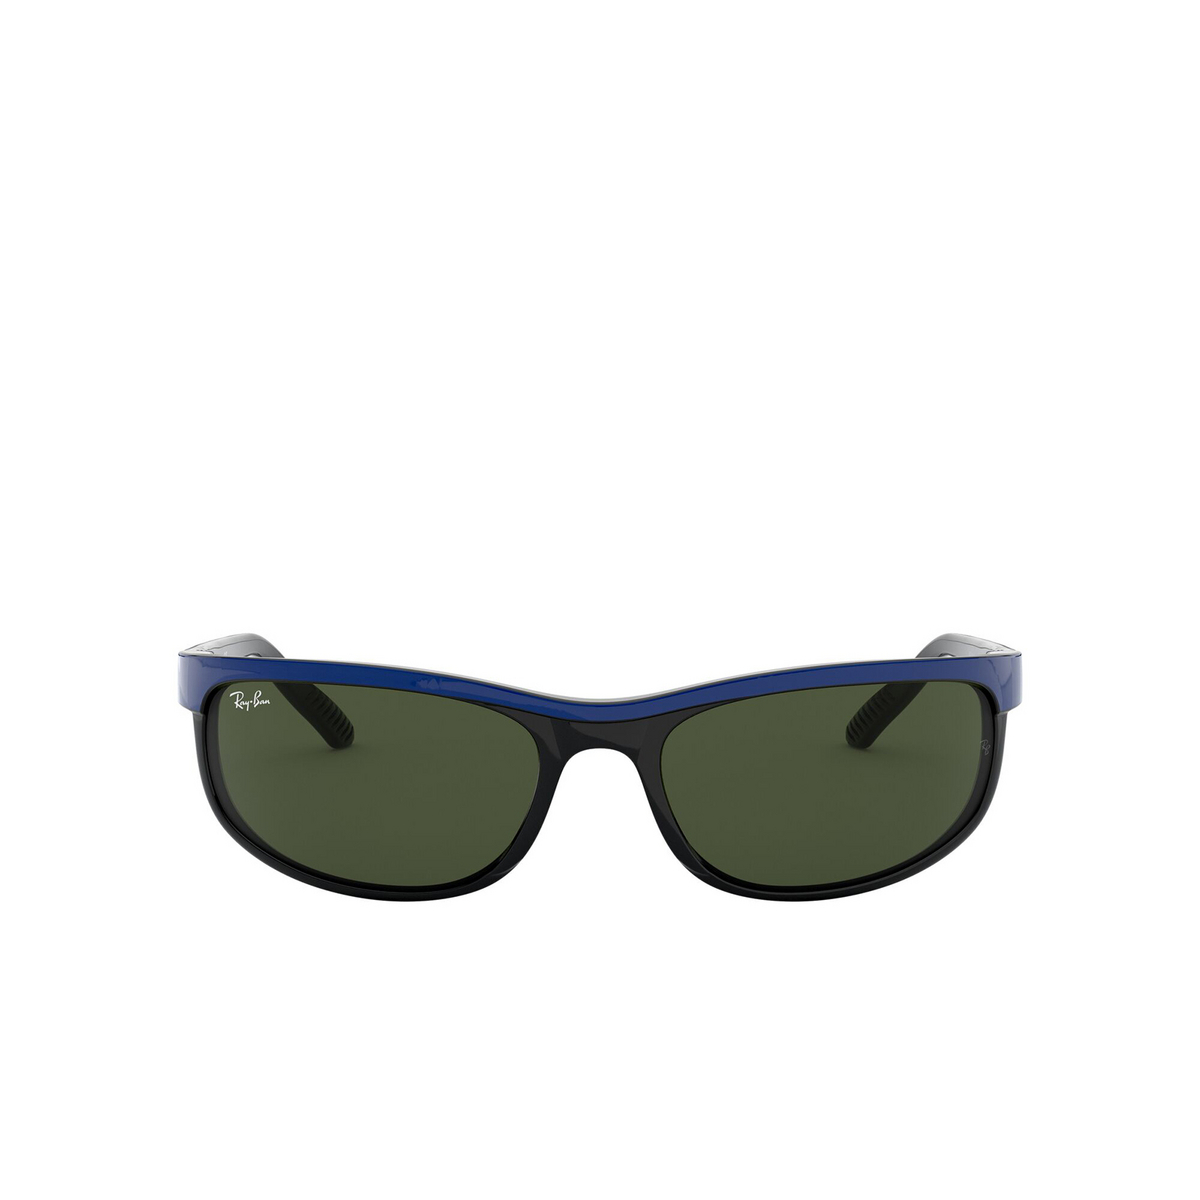 Ray-Ban® Rectangle Sunglasses: Predator 2 RB2027 color Top Blue On Black 6301 - front view.